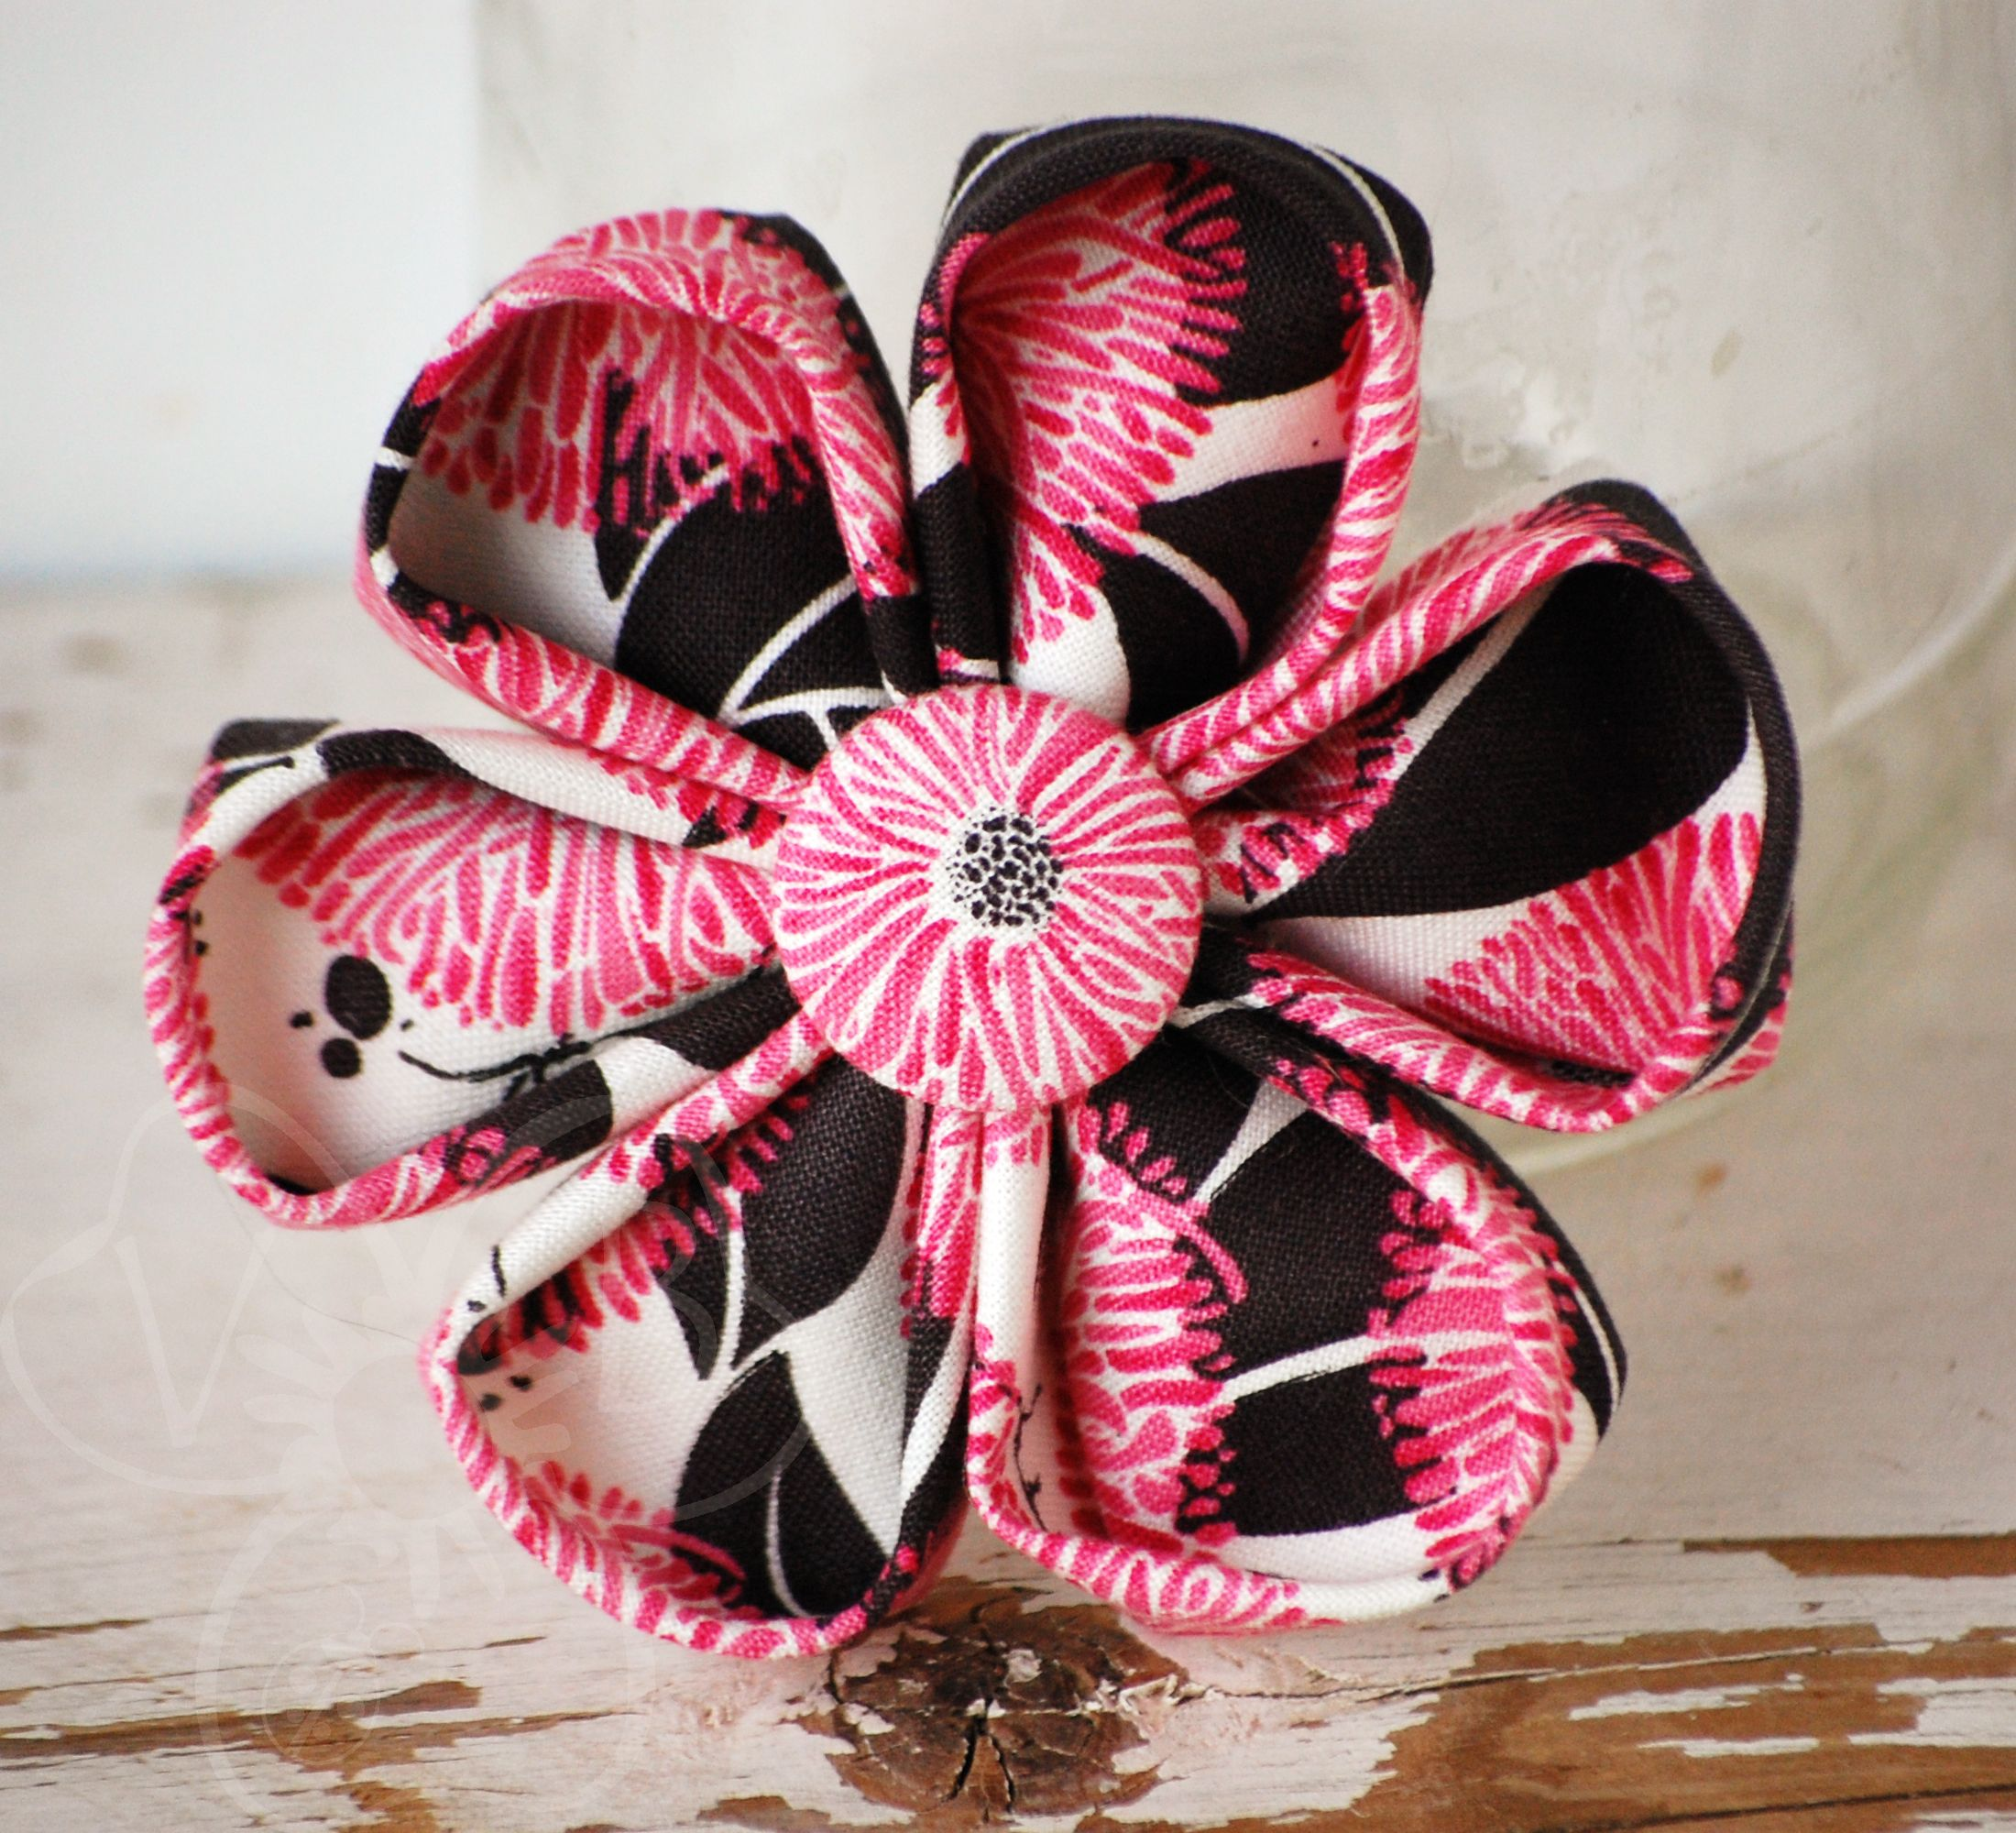 Wild Cherry Is A Large Eye Catching Cherry Blossom Style Flower In Vintage Black White And Hot Pi Hot Pink Flowers Handmade Hair Accessories Handmade Sellers